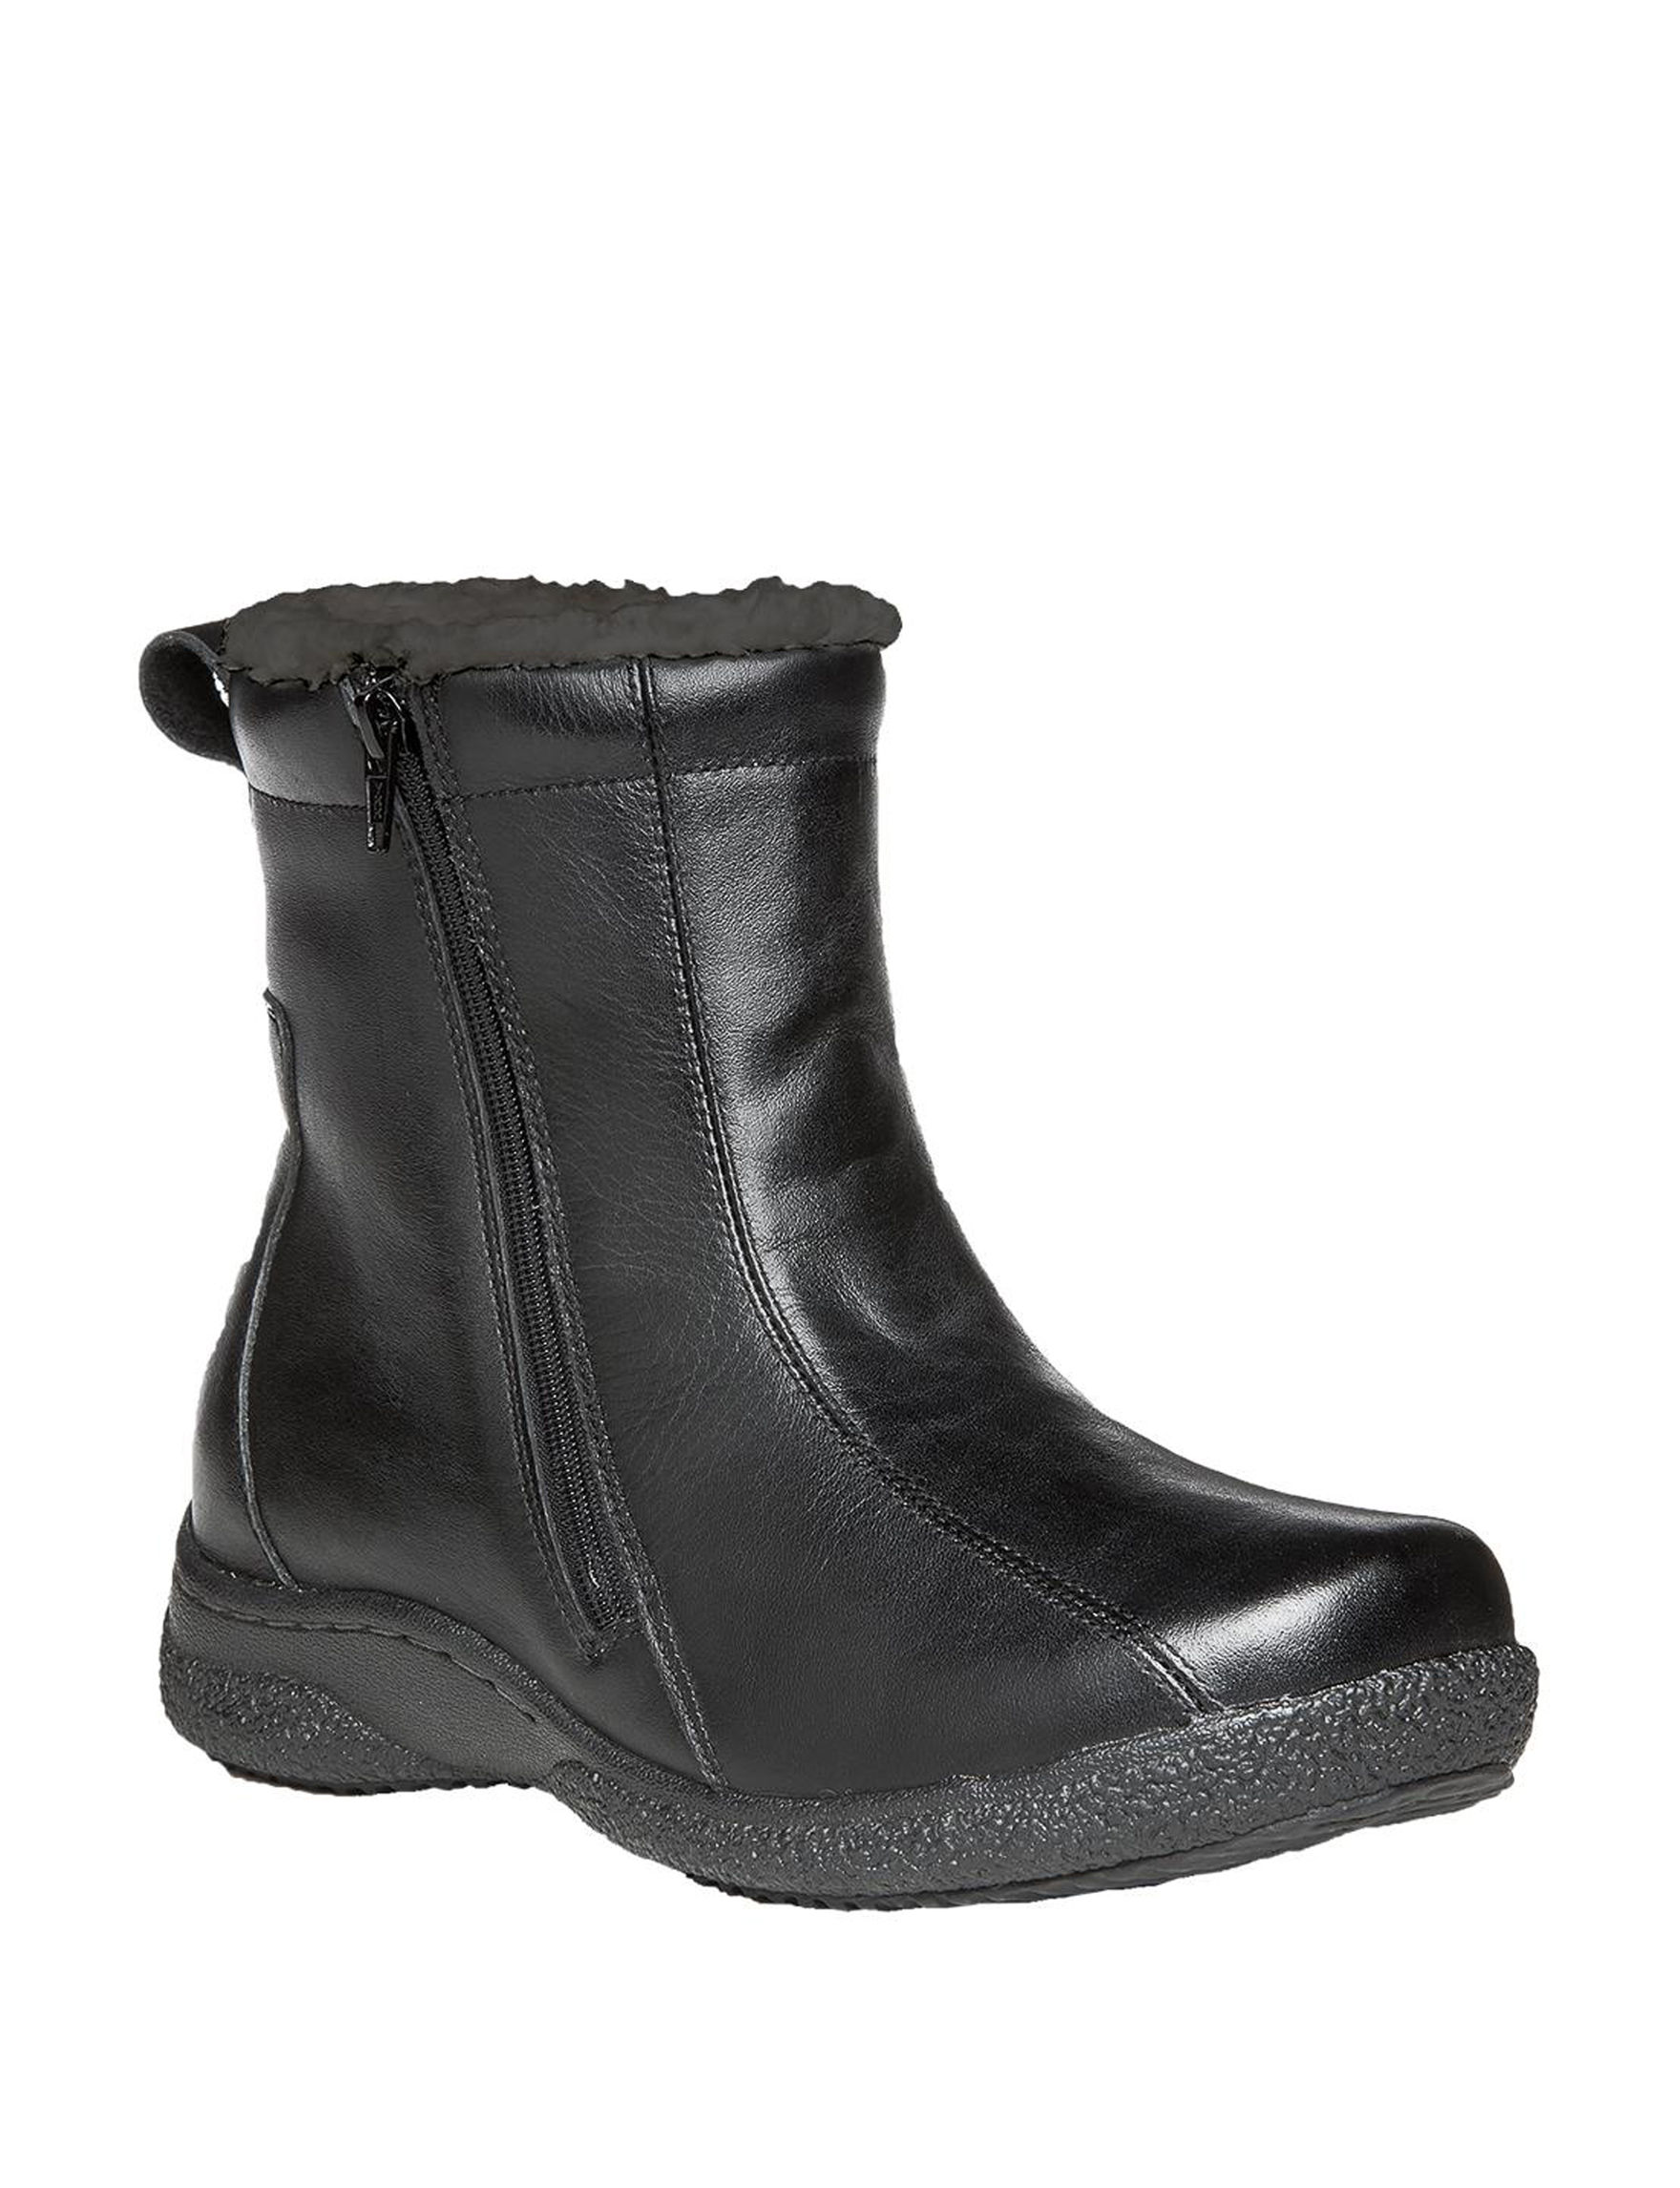 Propet Black Ankle Boots & Booties Winter Boots